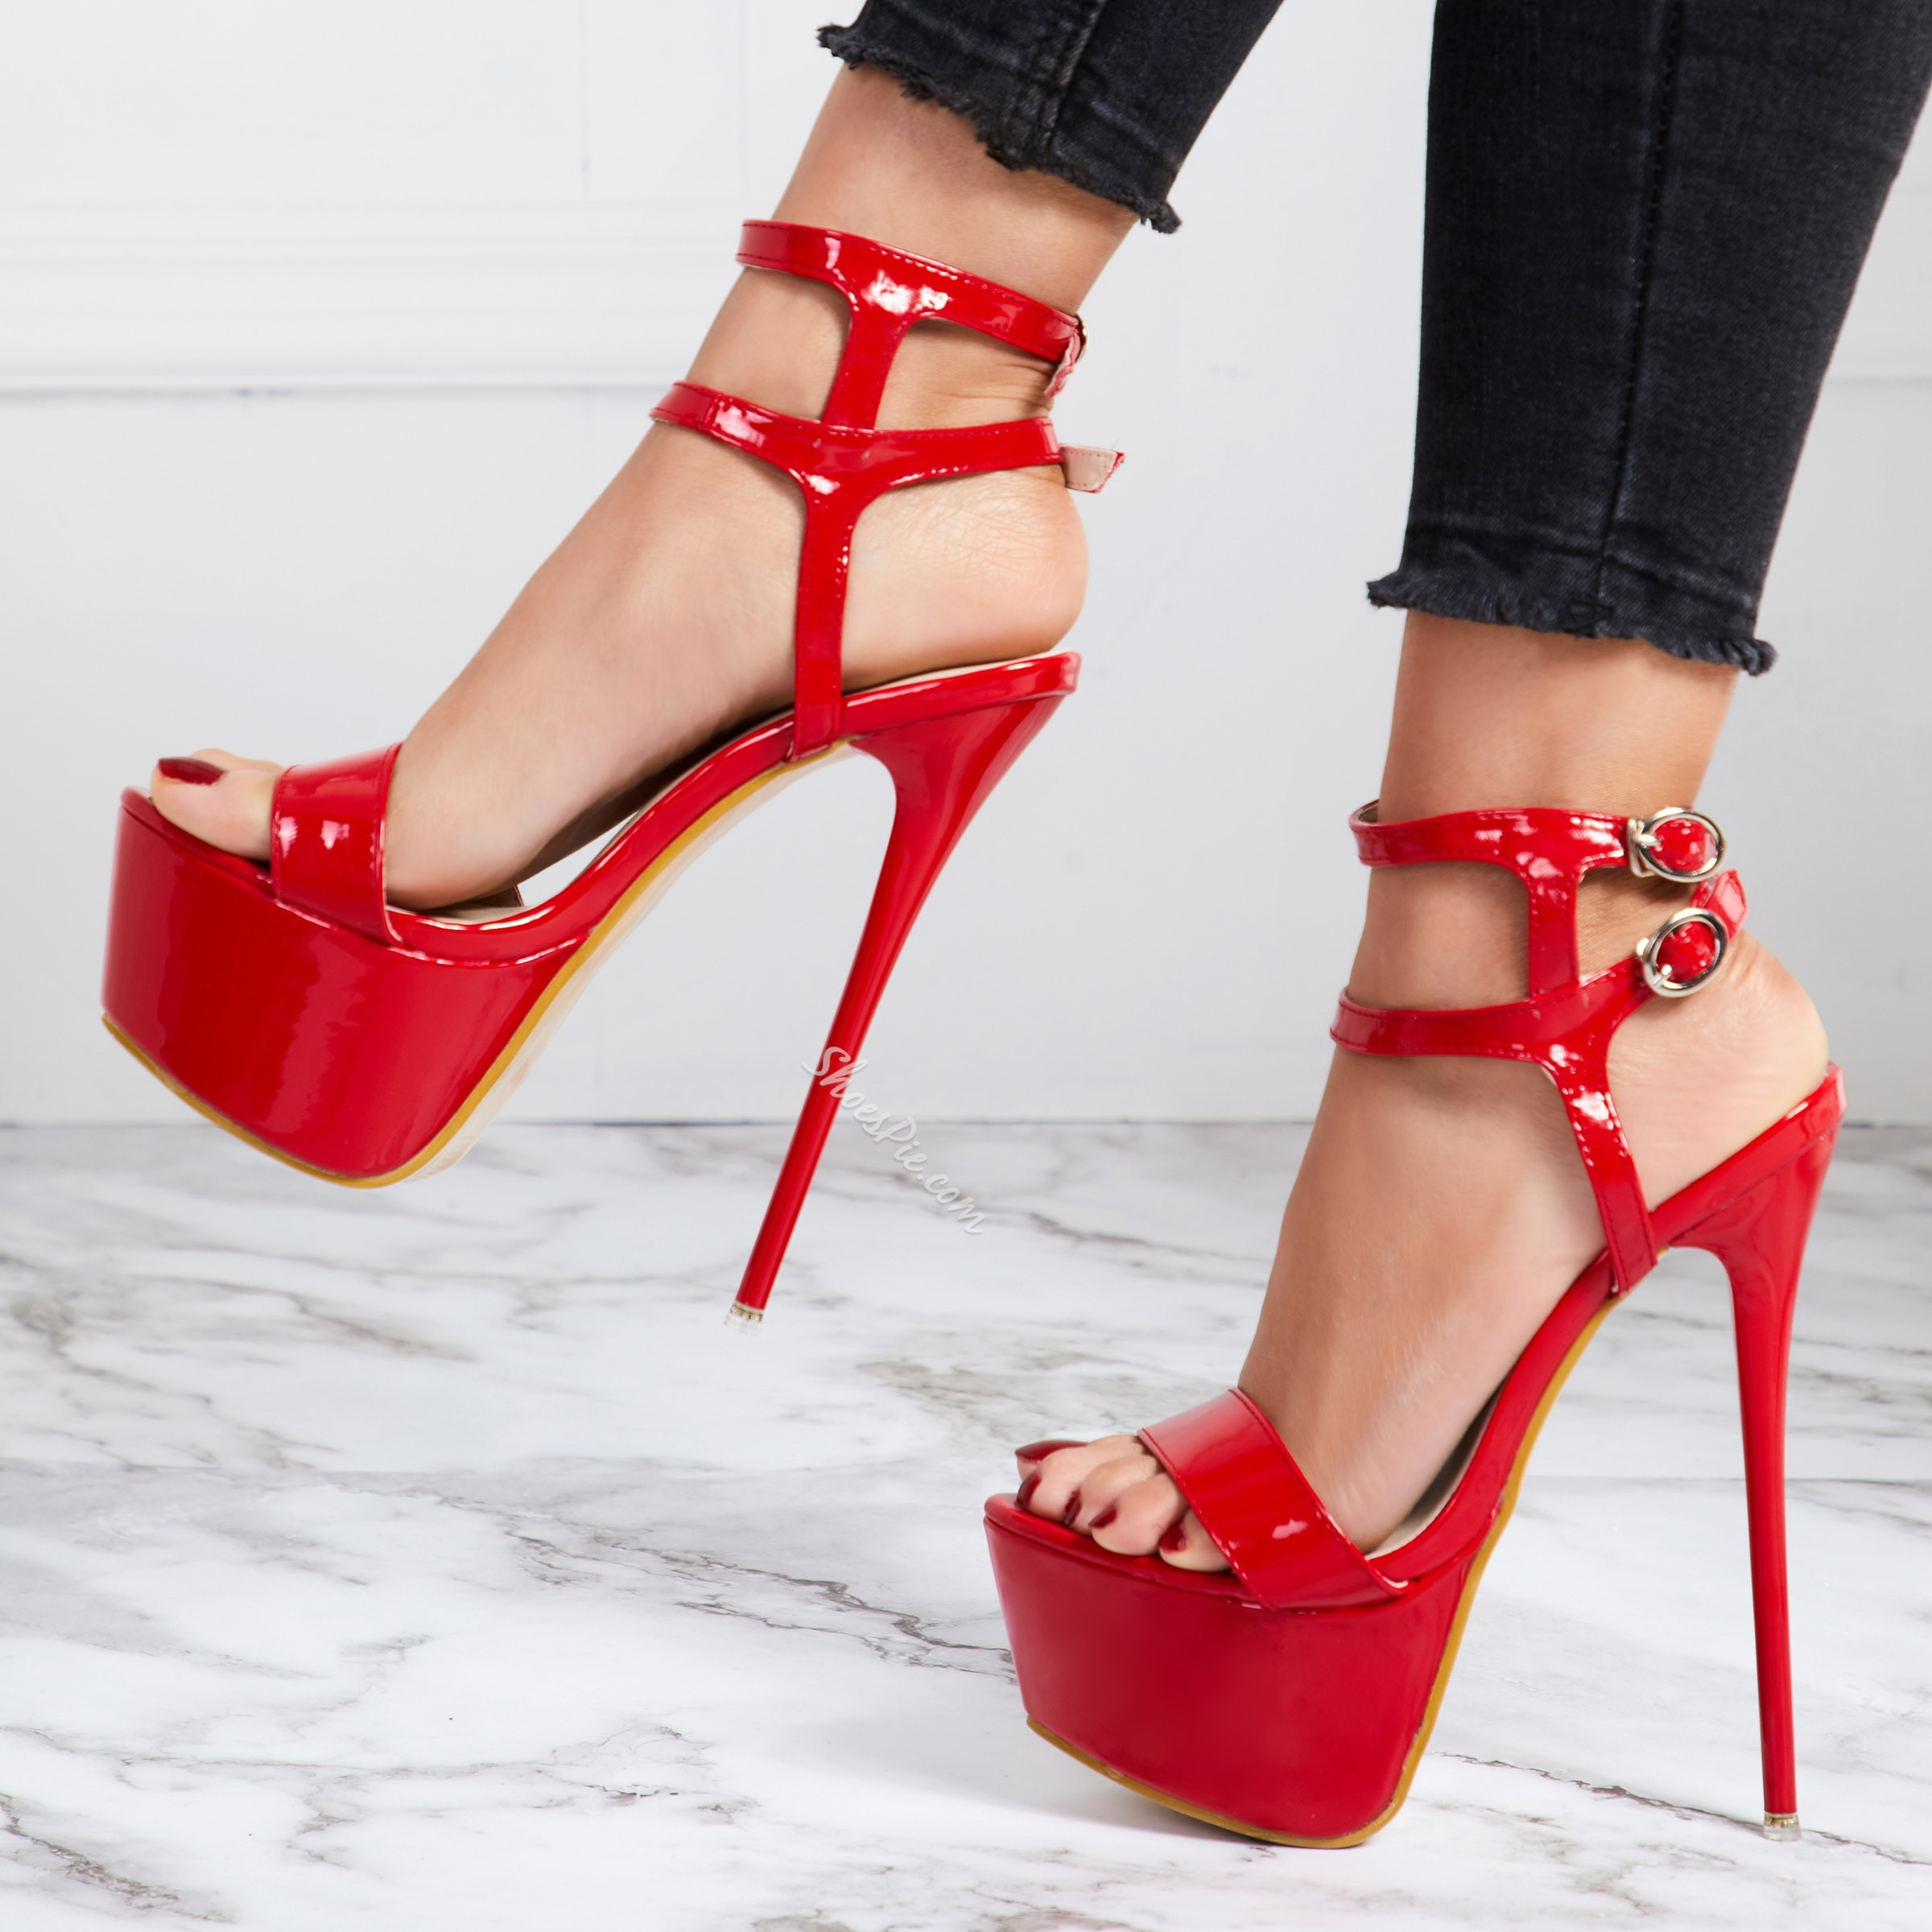 Sexy Platform Banquet Stiletto Heel Dress Sandals